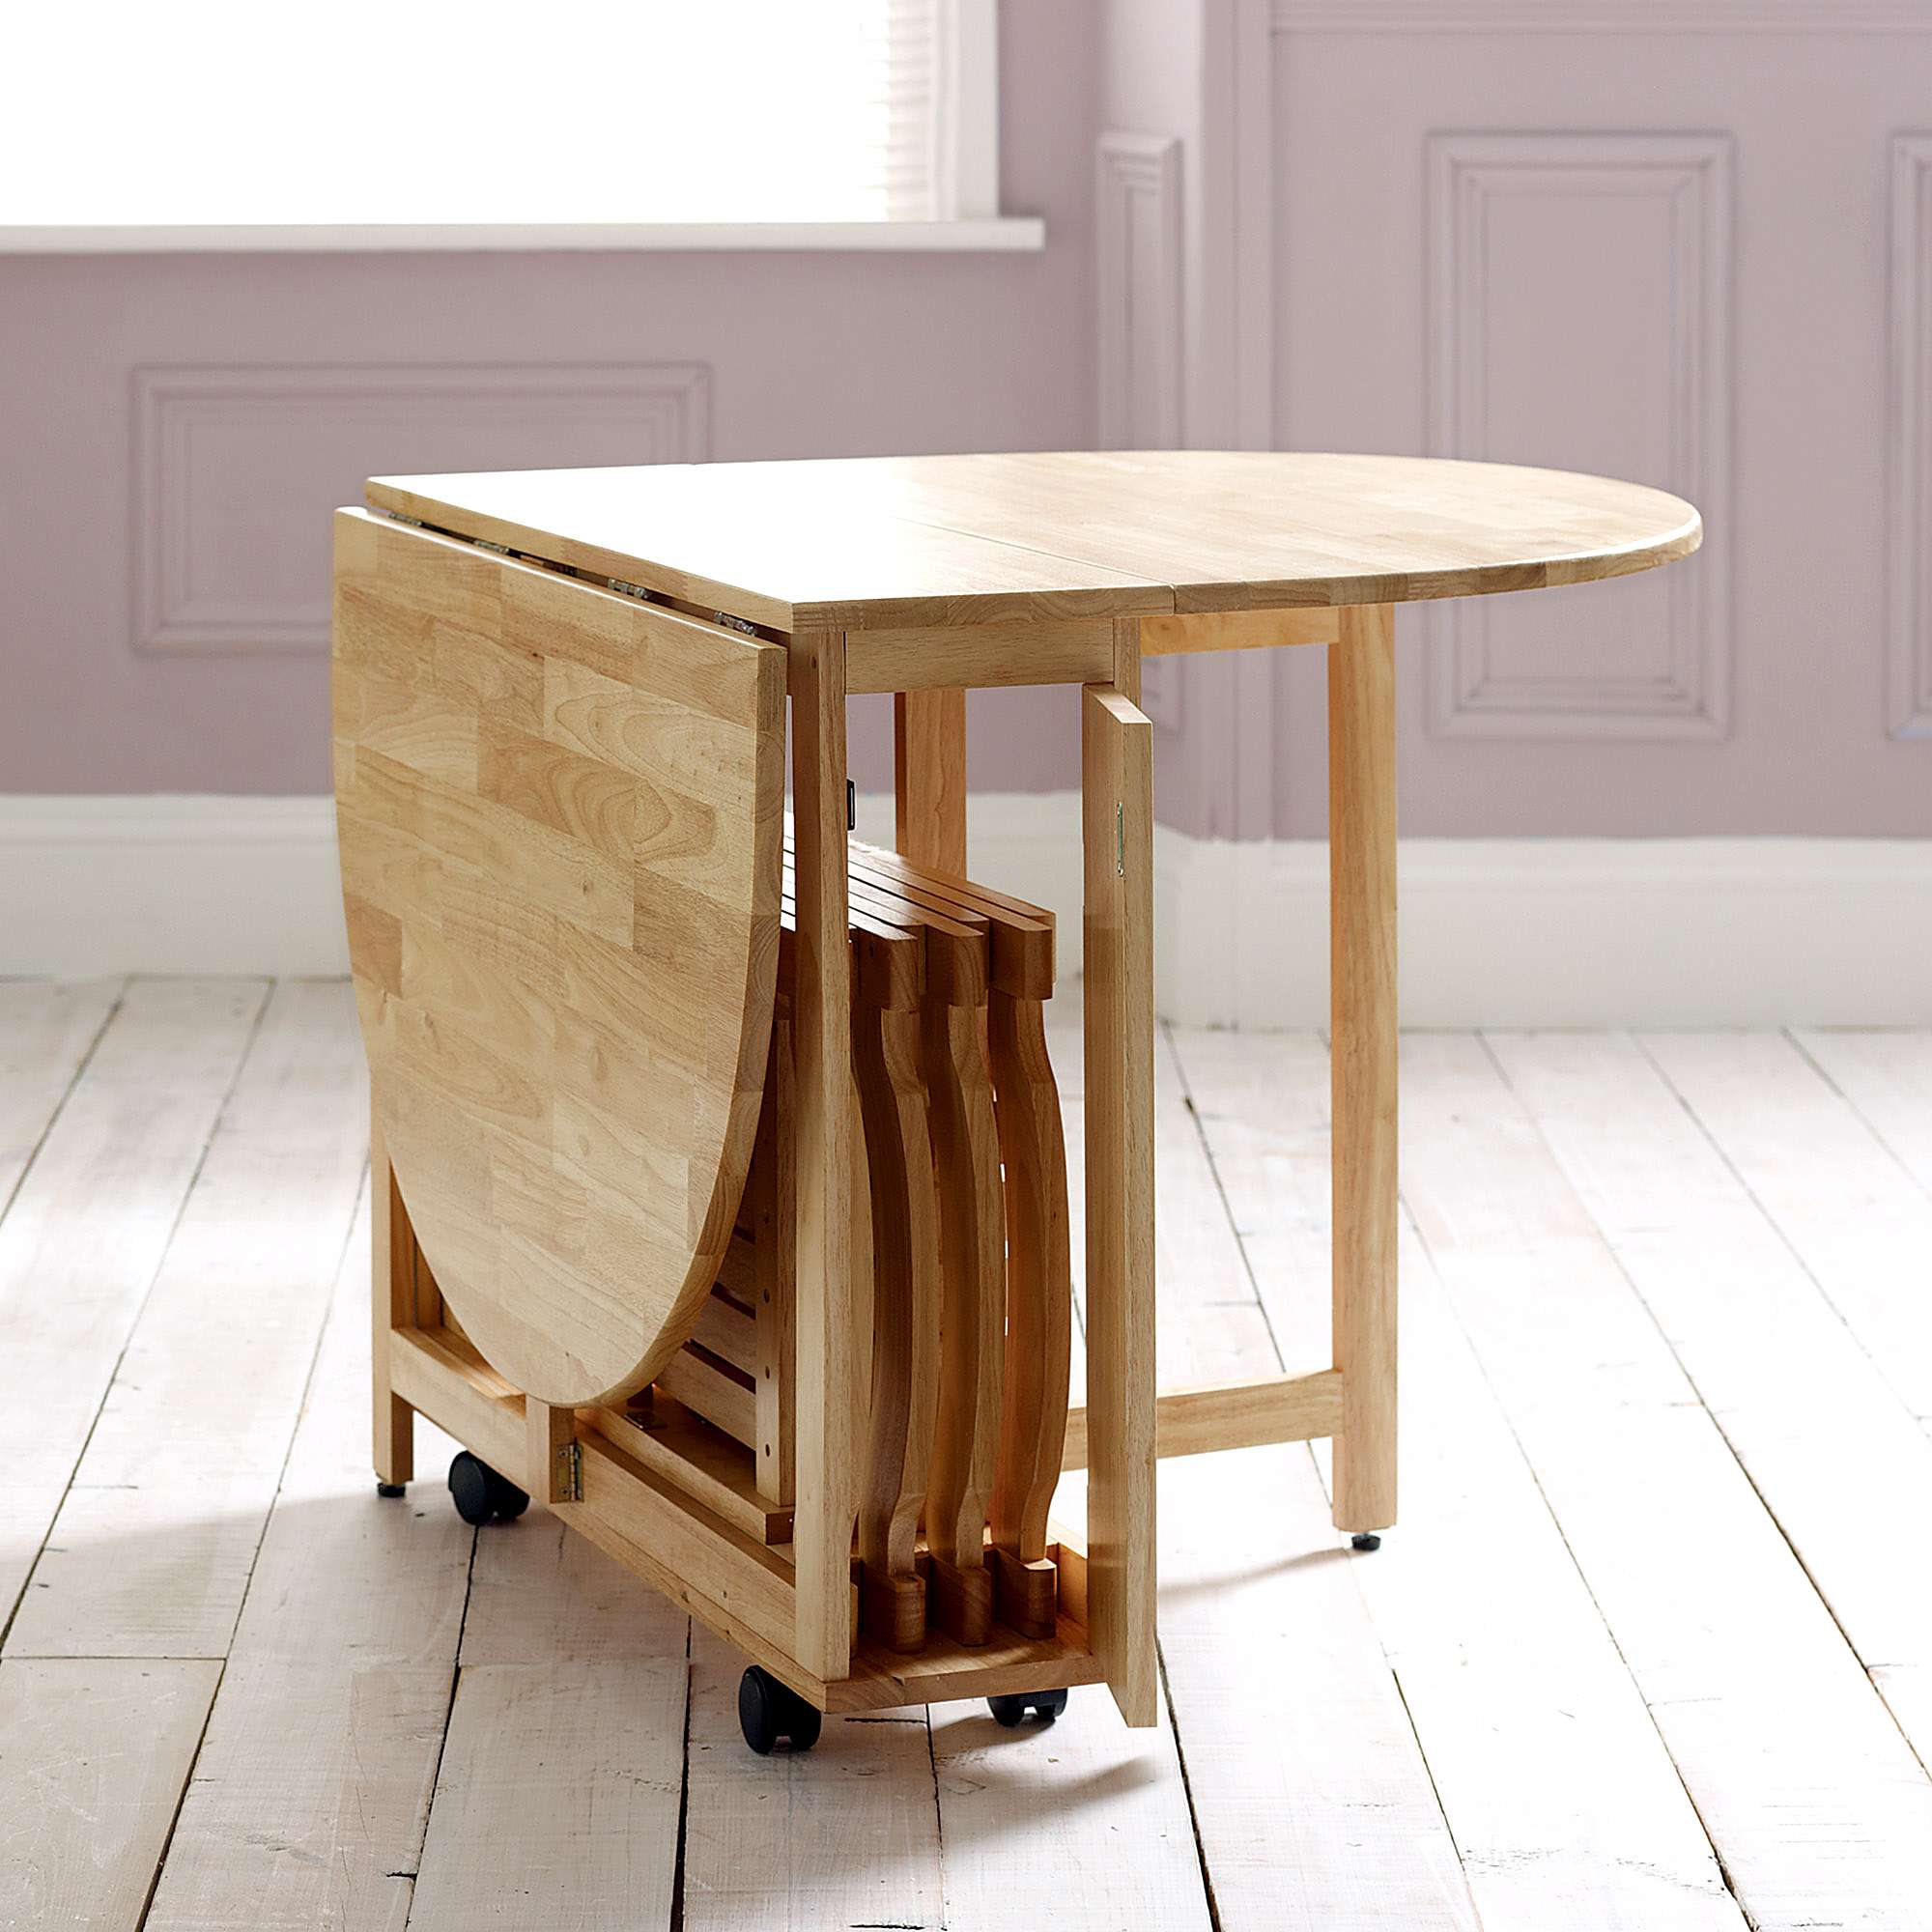 Small Wooden Tables ~ Choose a folding dining table